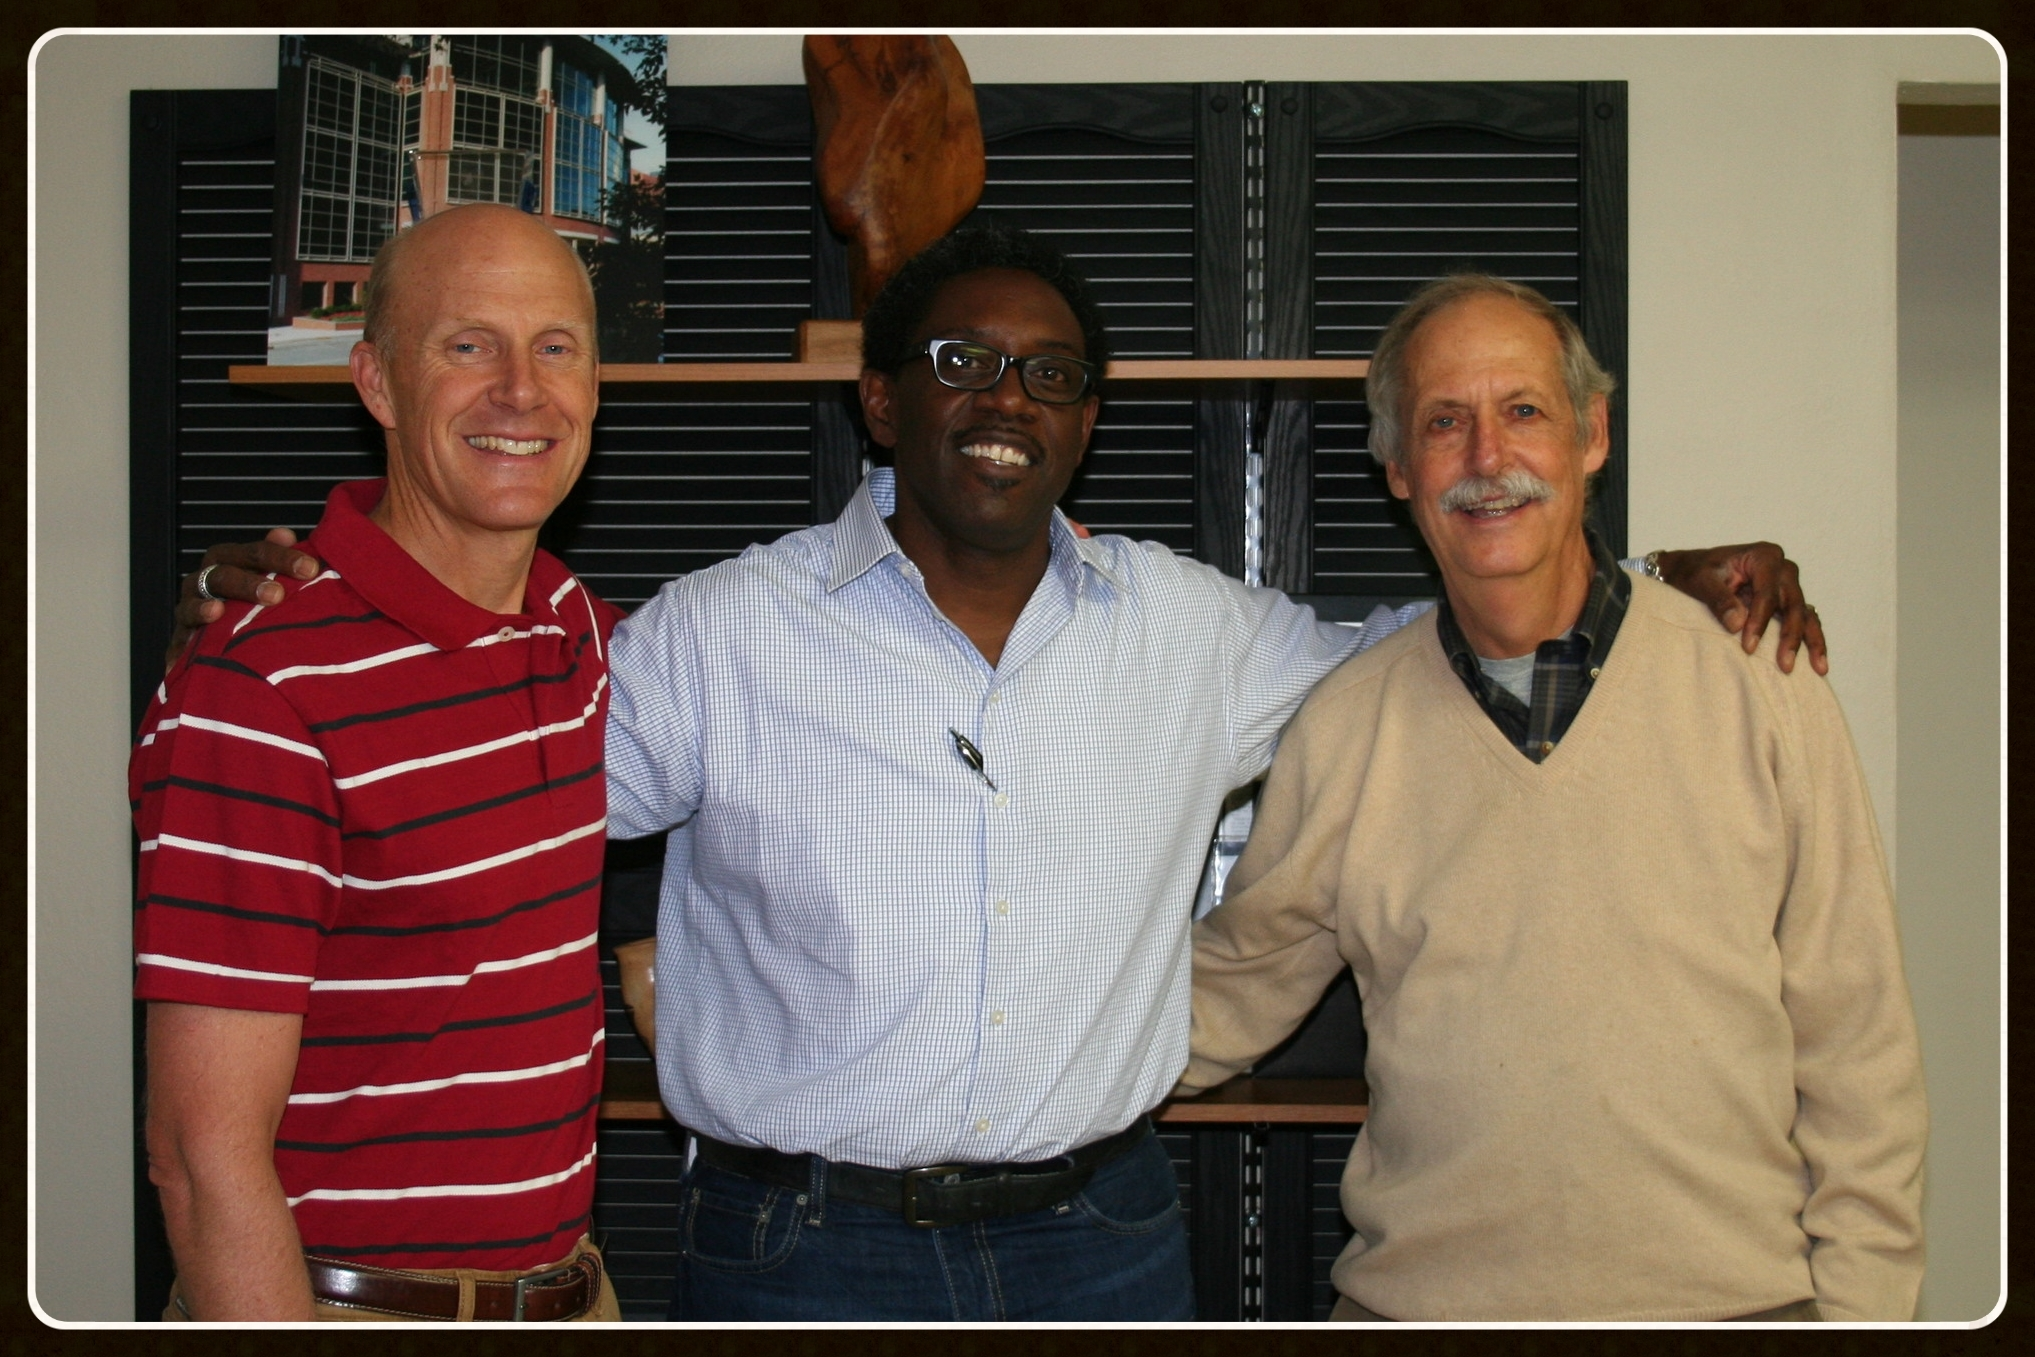 (L-R) David Kirk – Kirk Foundation, Mark Irvin – SITE Founder, Mike Kirk – Kirk Foundation